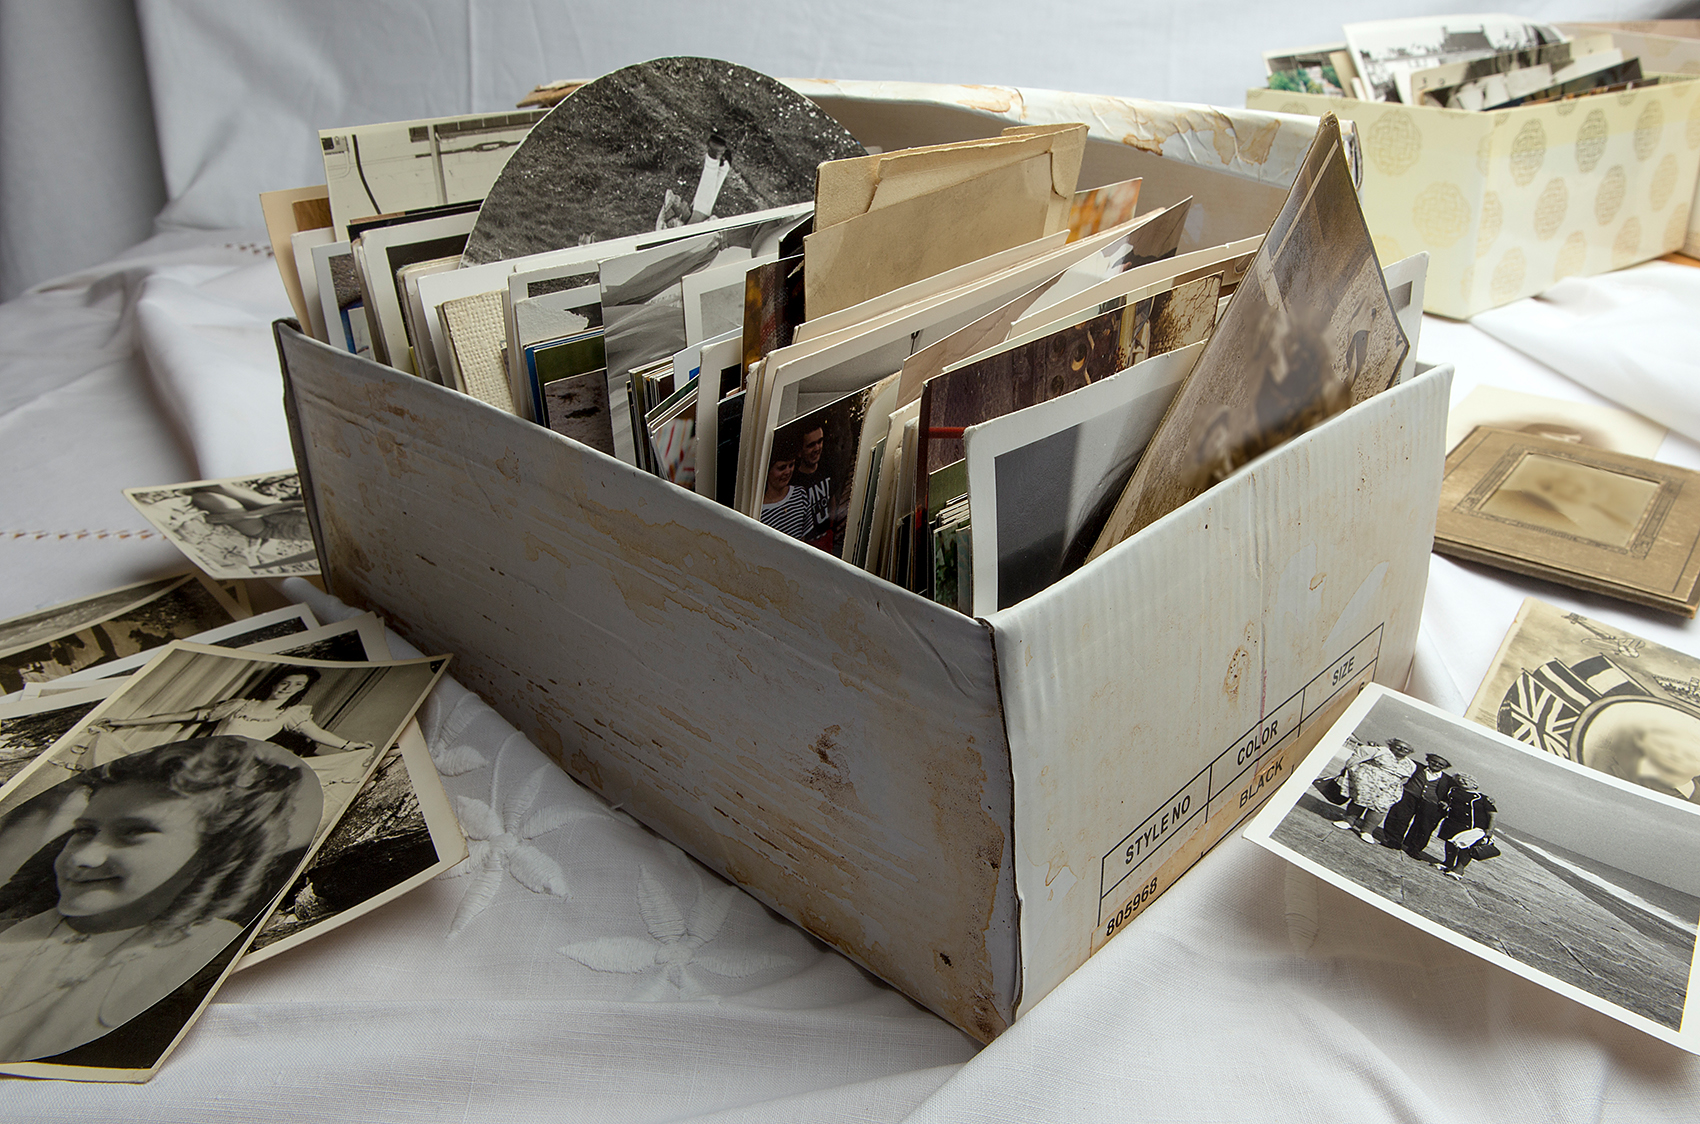 Decluttering solutions photos in old box